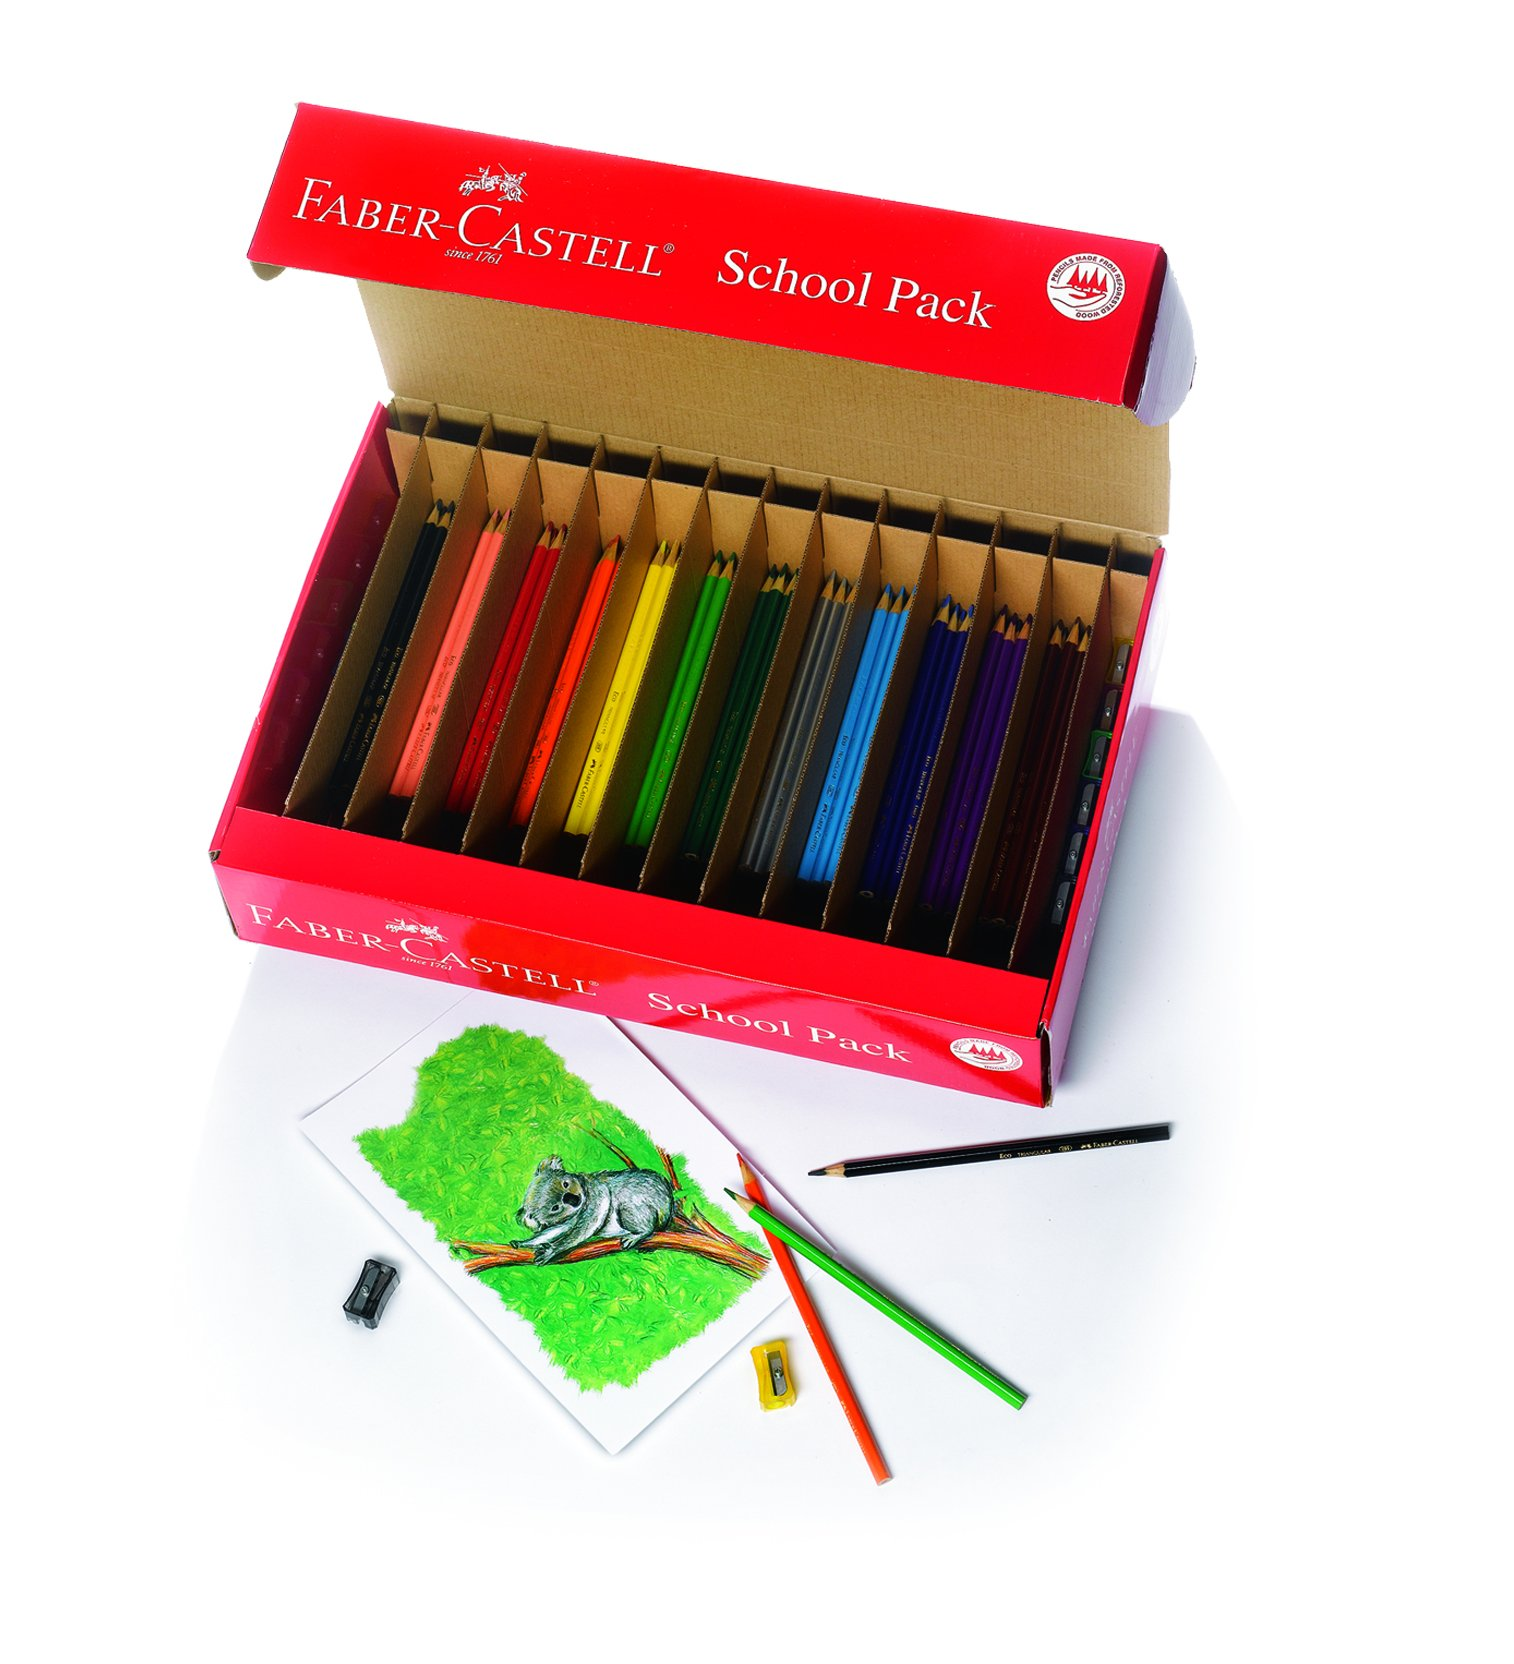 Faber-Castell Triangular Colored EcoPencil School Pack - 240 Pencils (20 Sets of 12 Colors) and 12 Pencil sharpeners